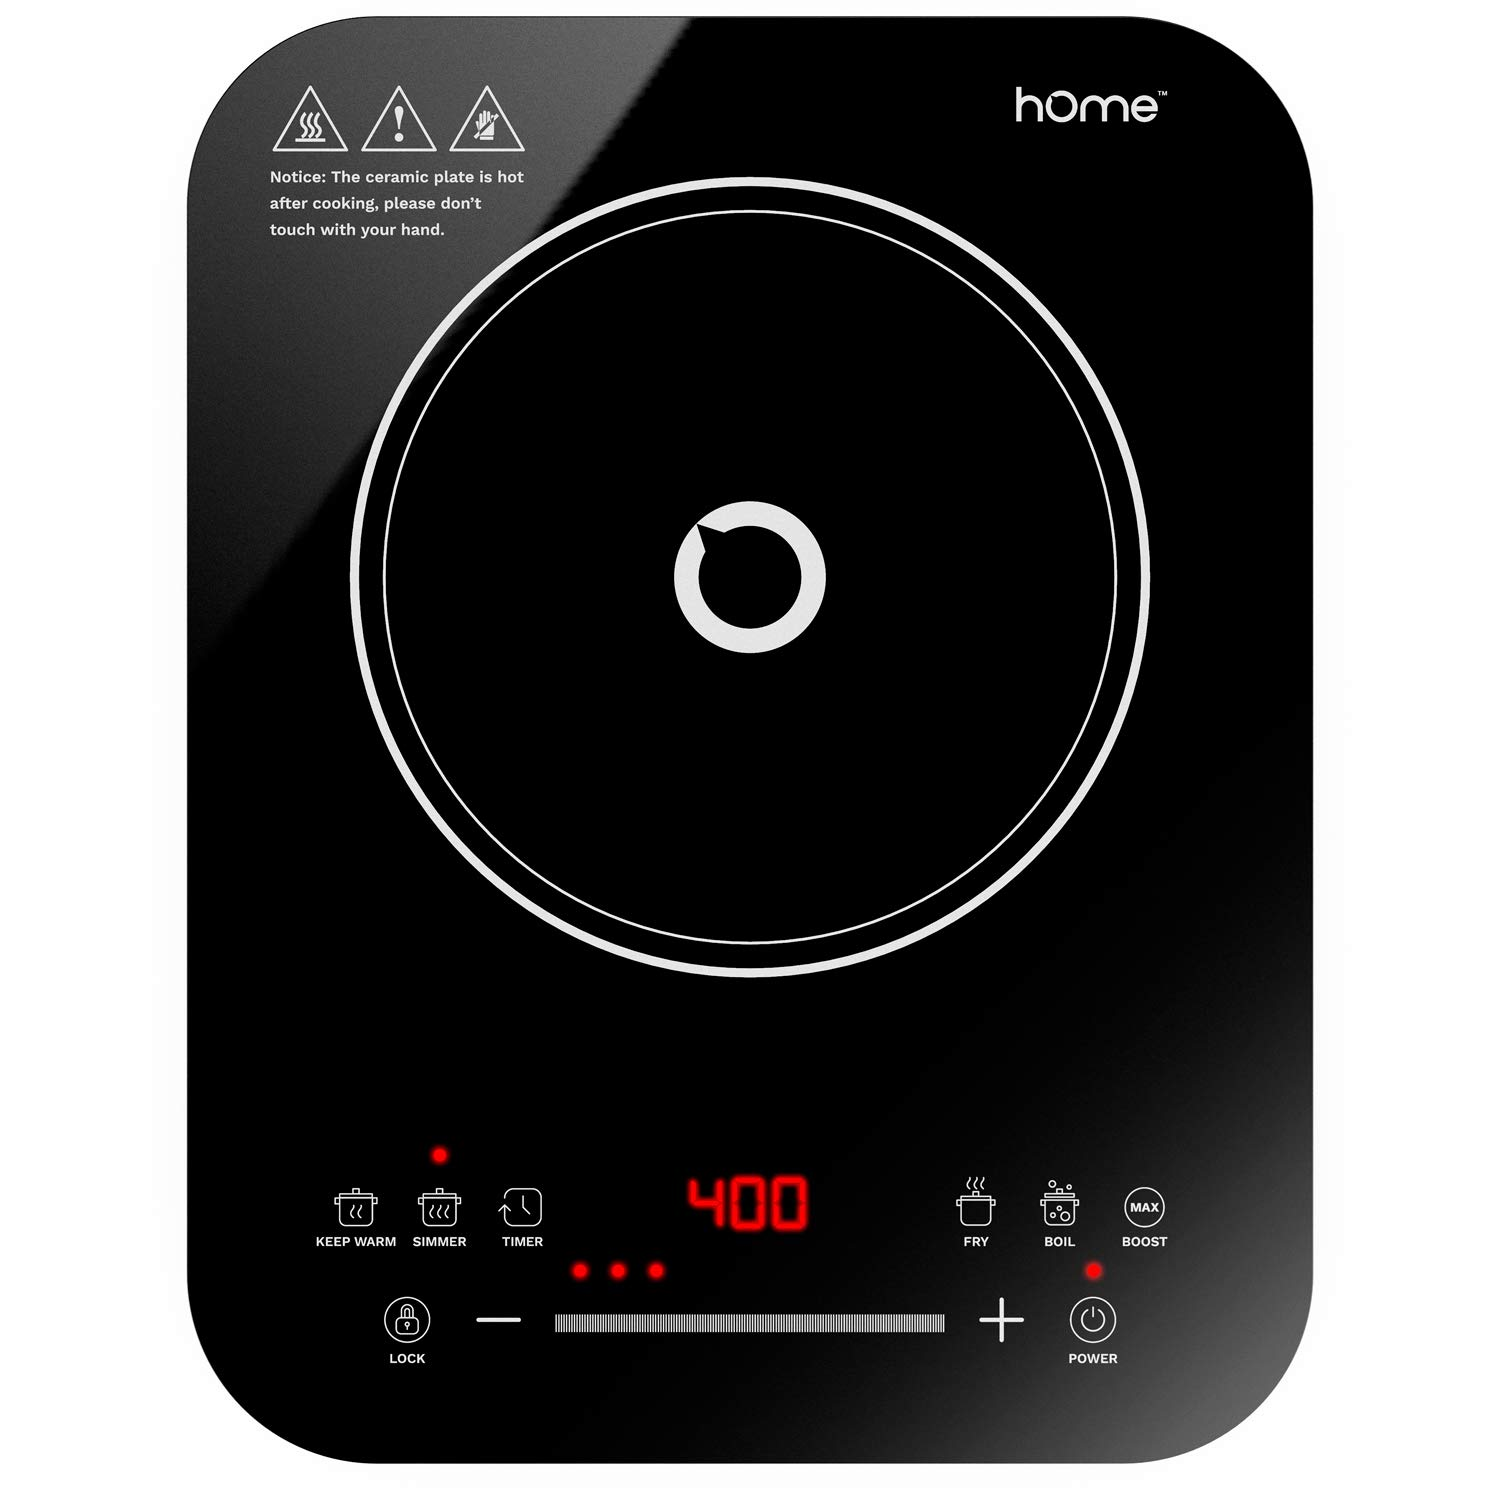 hOmeLabs Portable Induction Cooktop - Powerful Single Burner Electric Countertop Stove - Features 10 Heating Levels, 6 Cook Modes, Touch Controls and Child Safety Lock